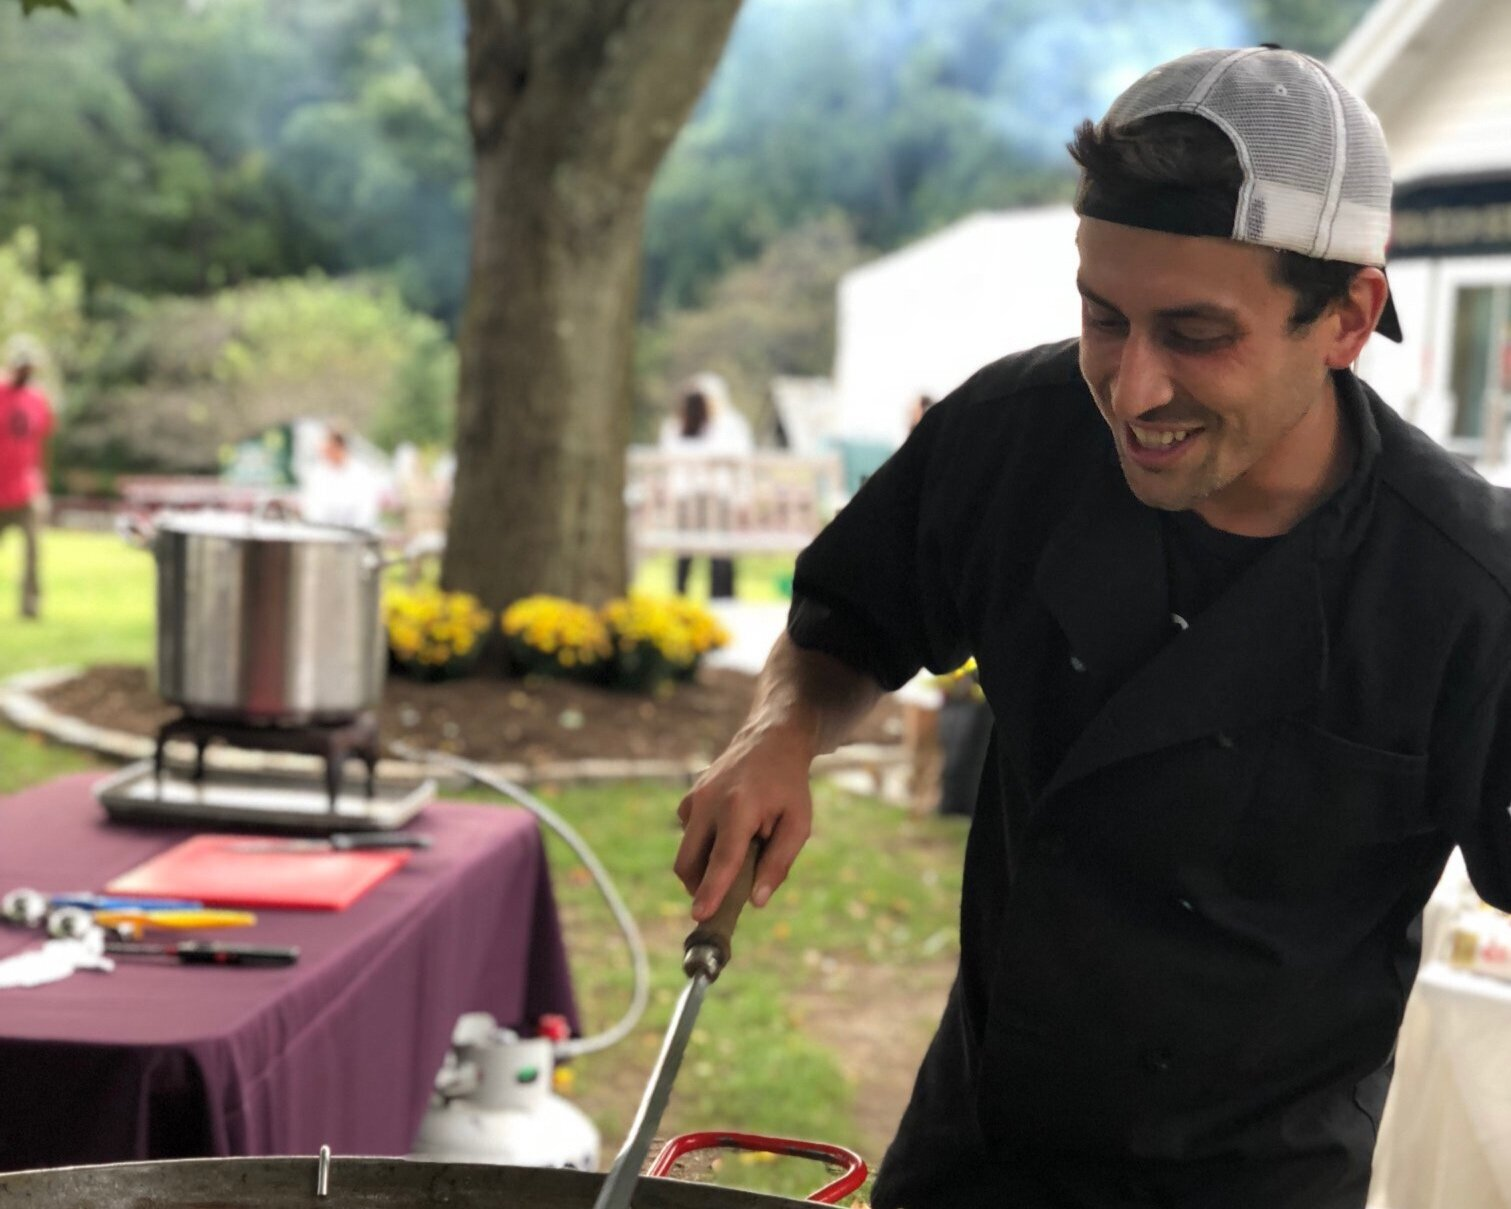 Chef Glen Michael of Fire and Rice Fairfield - Meet Chef Glen Michael of Fire & Rice Fairfield, who is whipping up his famous paella as an appetizer at Harvest Fest.